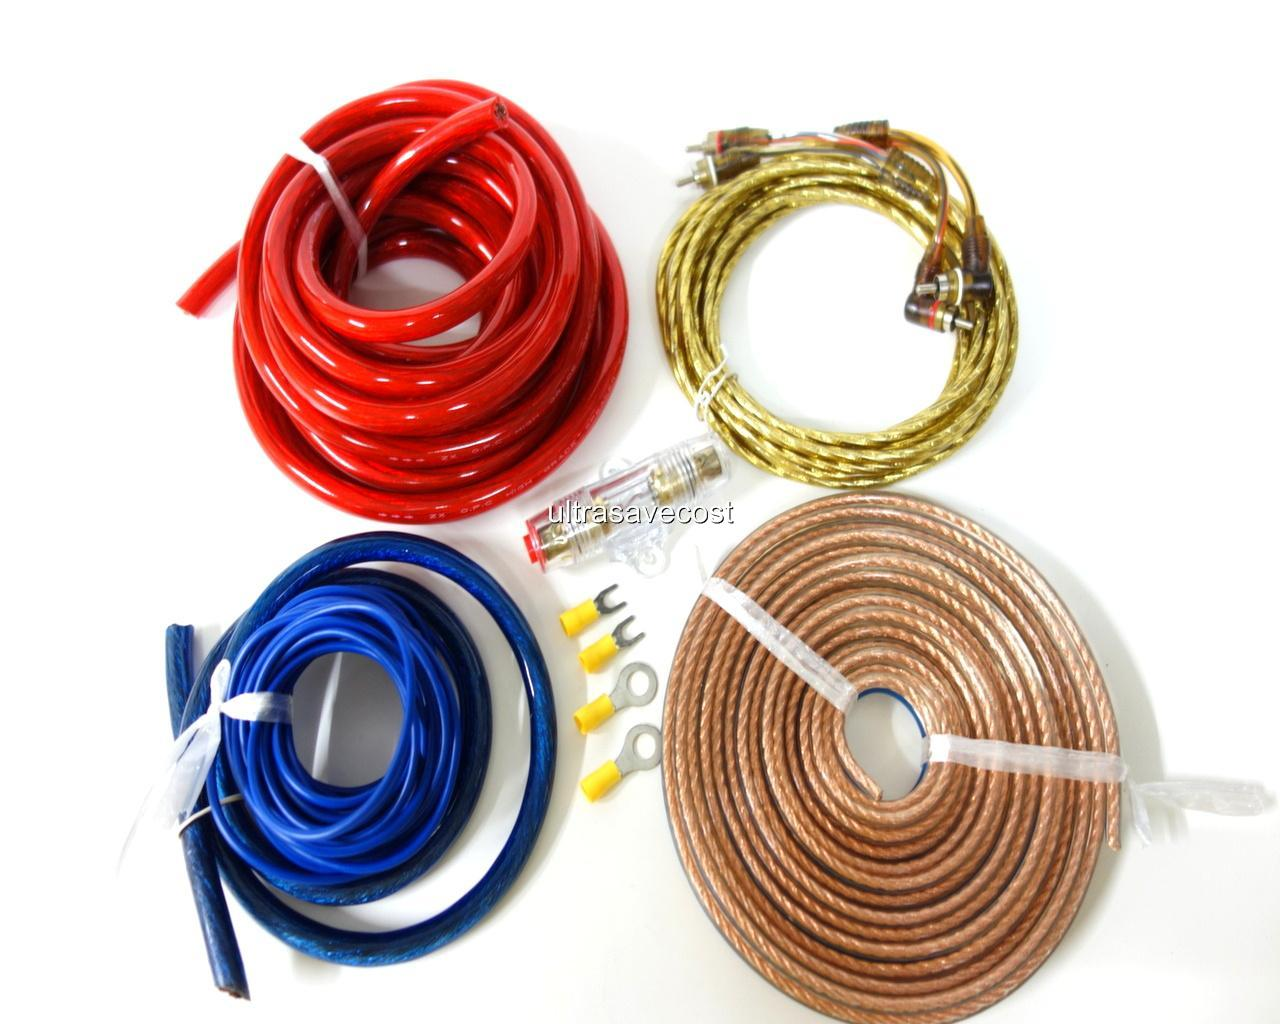 high quality car amplifier power wire wiring amp kit 4. Black Bedroom Furniture Sets. Home Design Ideas